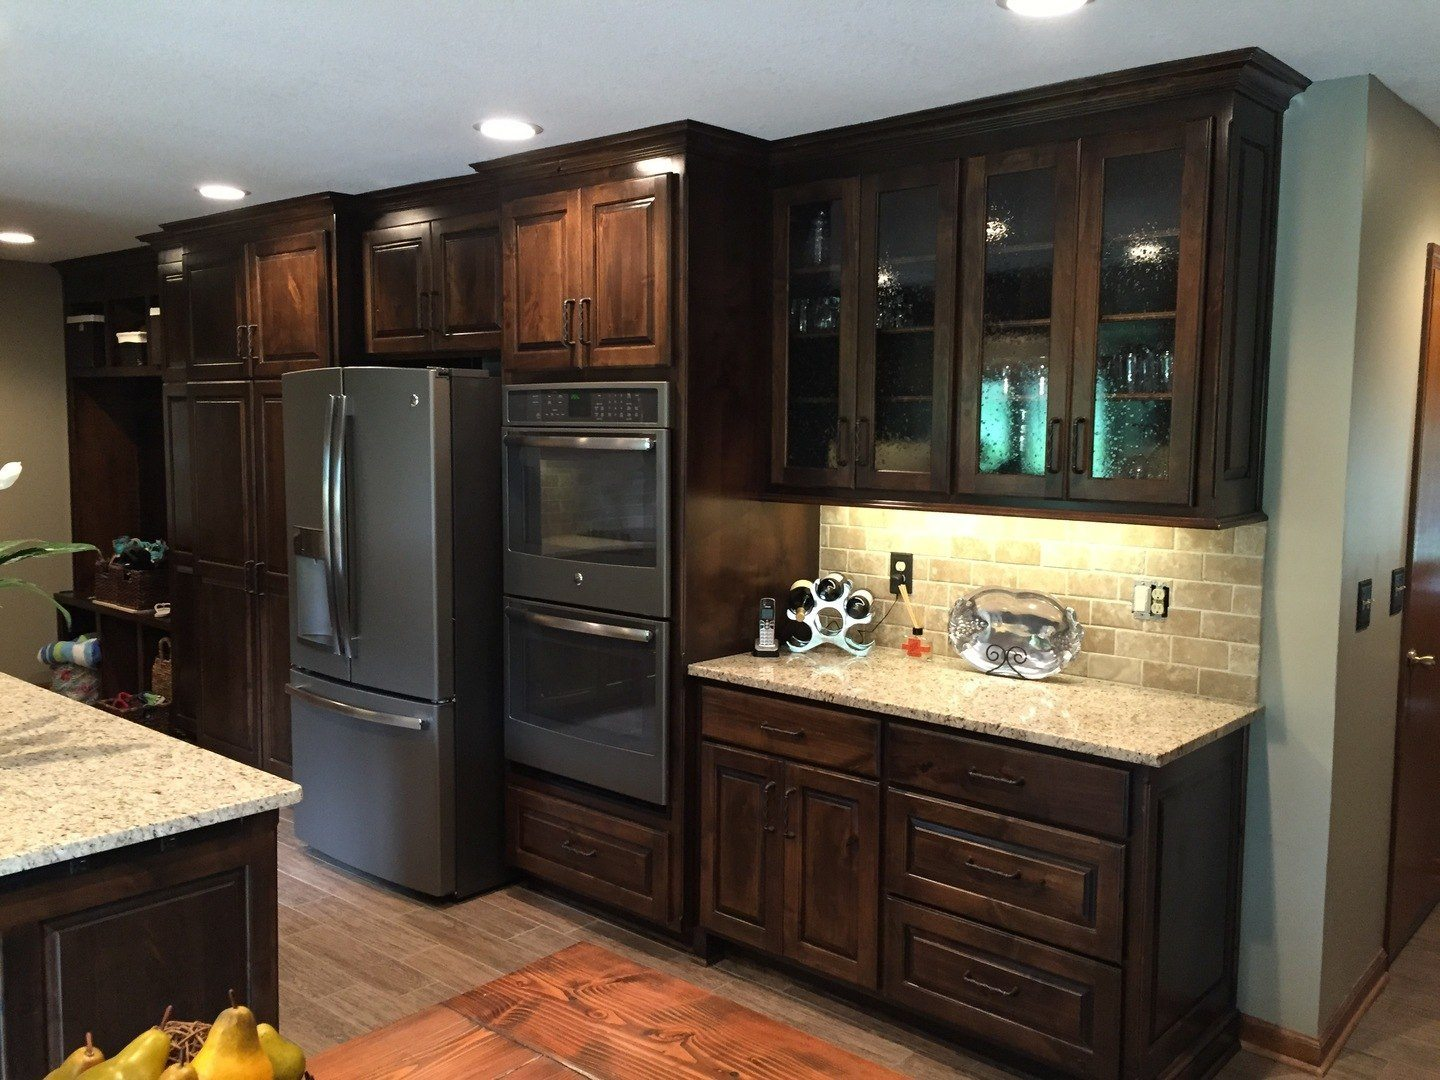 kitchen remodeling | olathe, overland park, ks & kansas city built